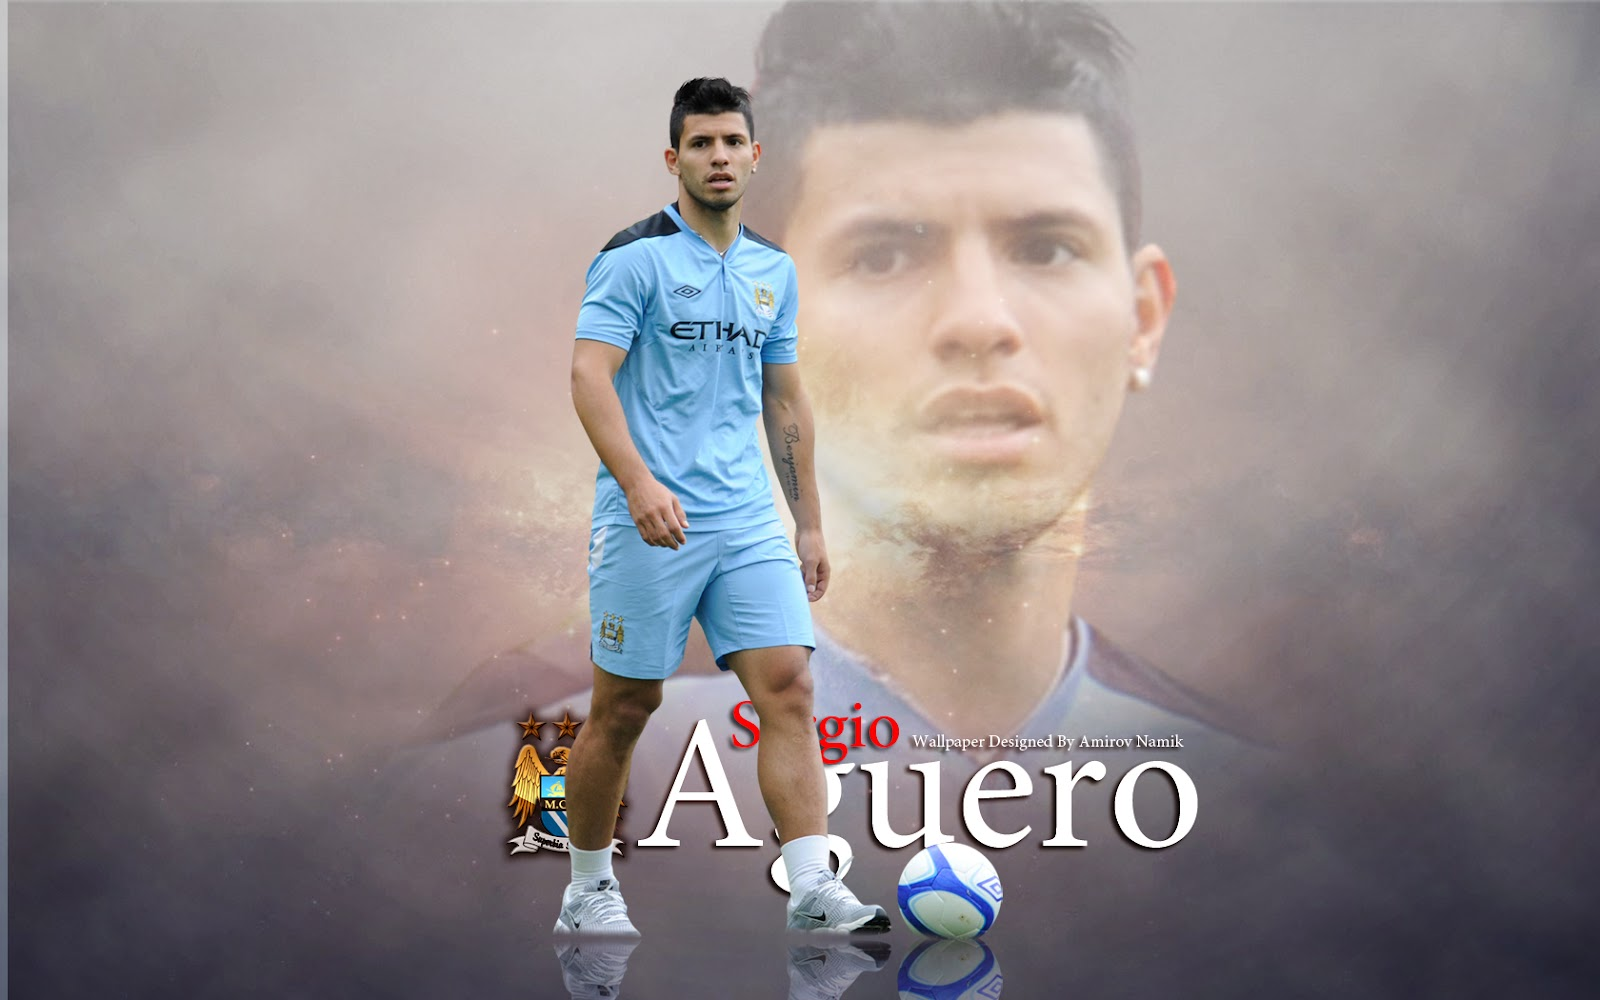 Sergio Aguero Wallpapers: HD Wallpapers ,Backgrounds